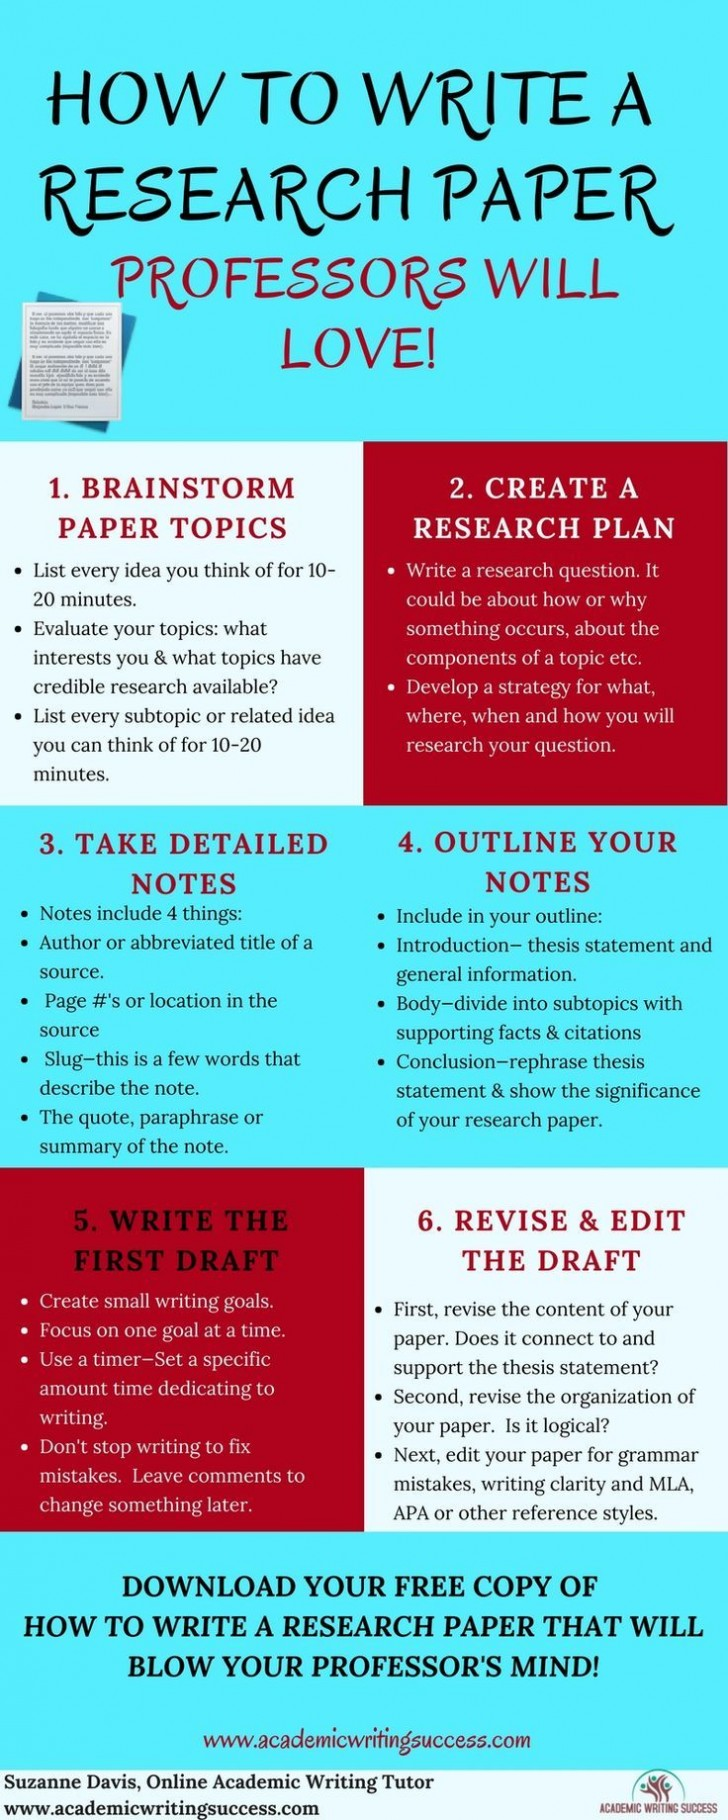 012 Research Paper Tips For Writing Unforgettable Papers A History Fast Quickly 728